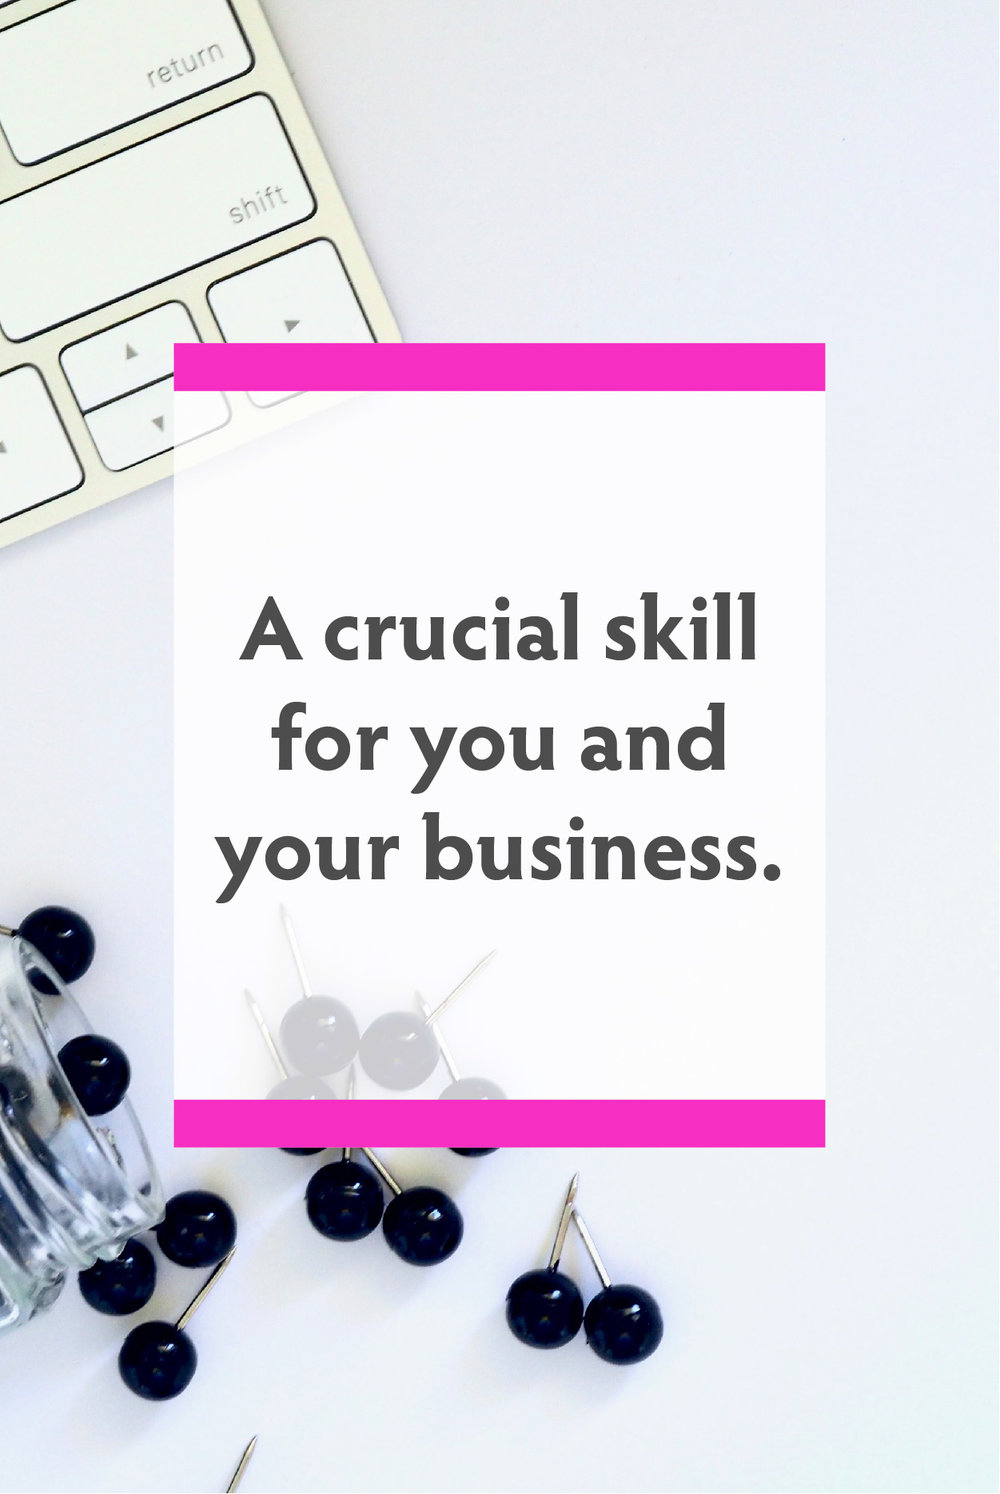 A crucial skill for you and your business.jpg